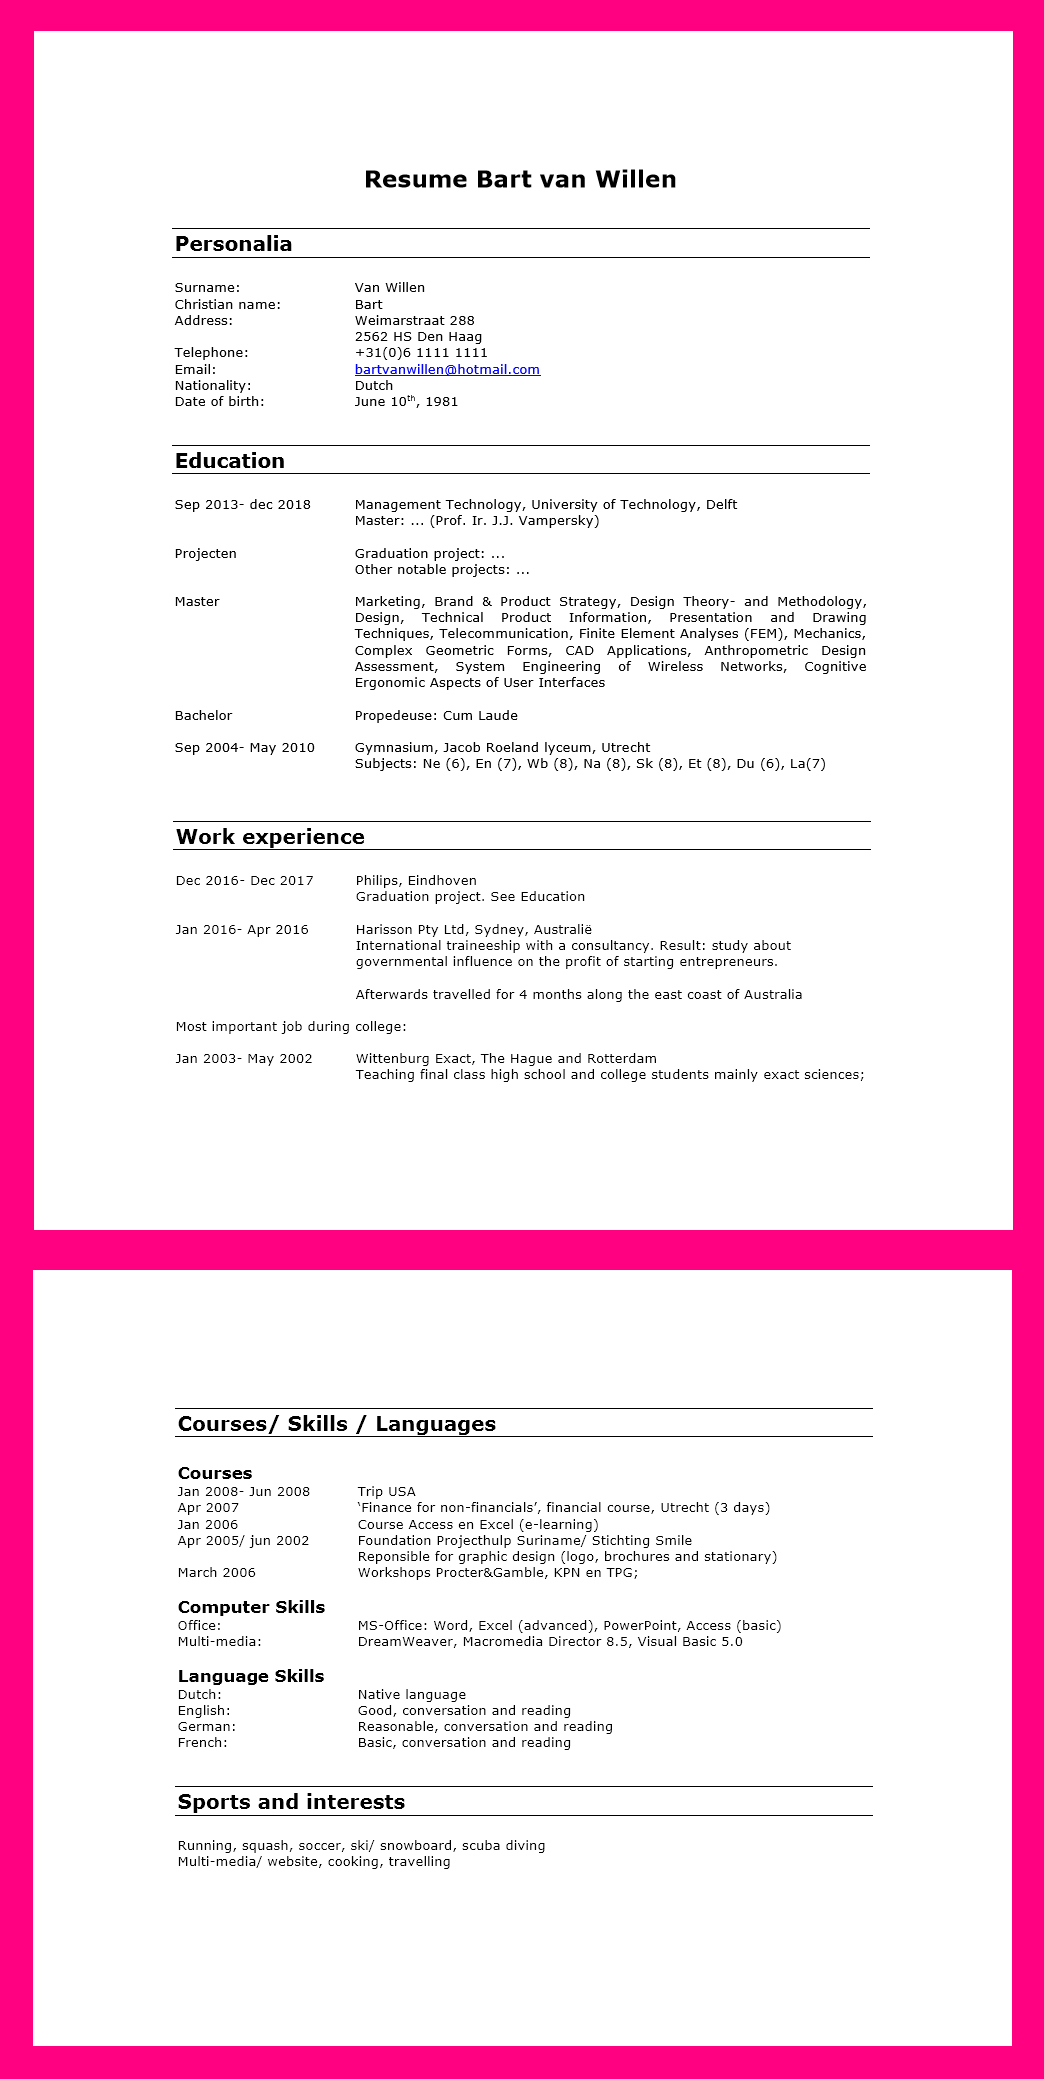 engels cv template   Incep.imagine ex.co